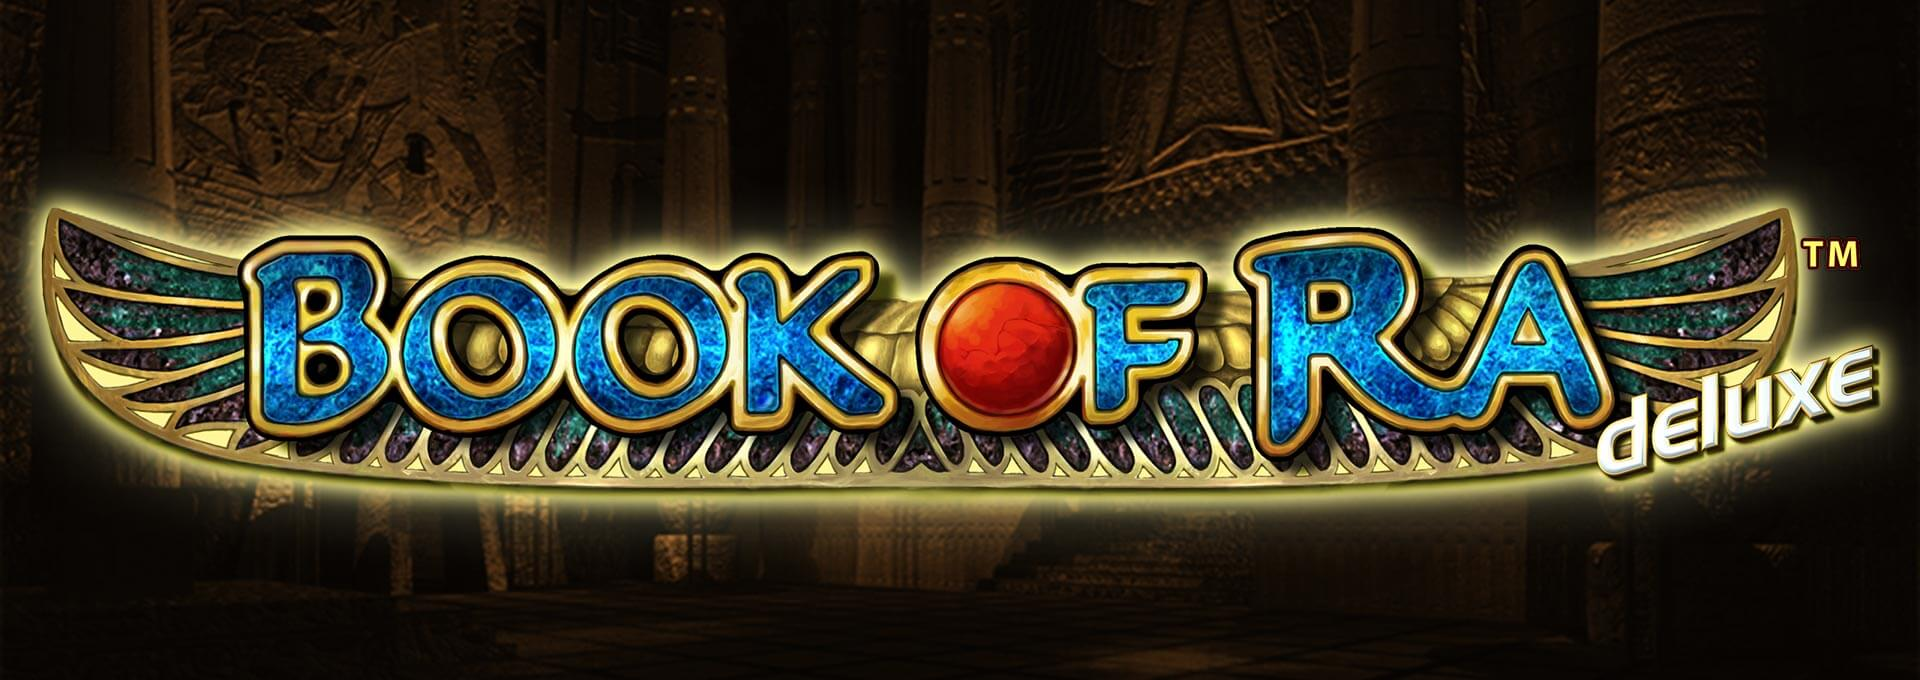 casino live online book of ra deluxe slot